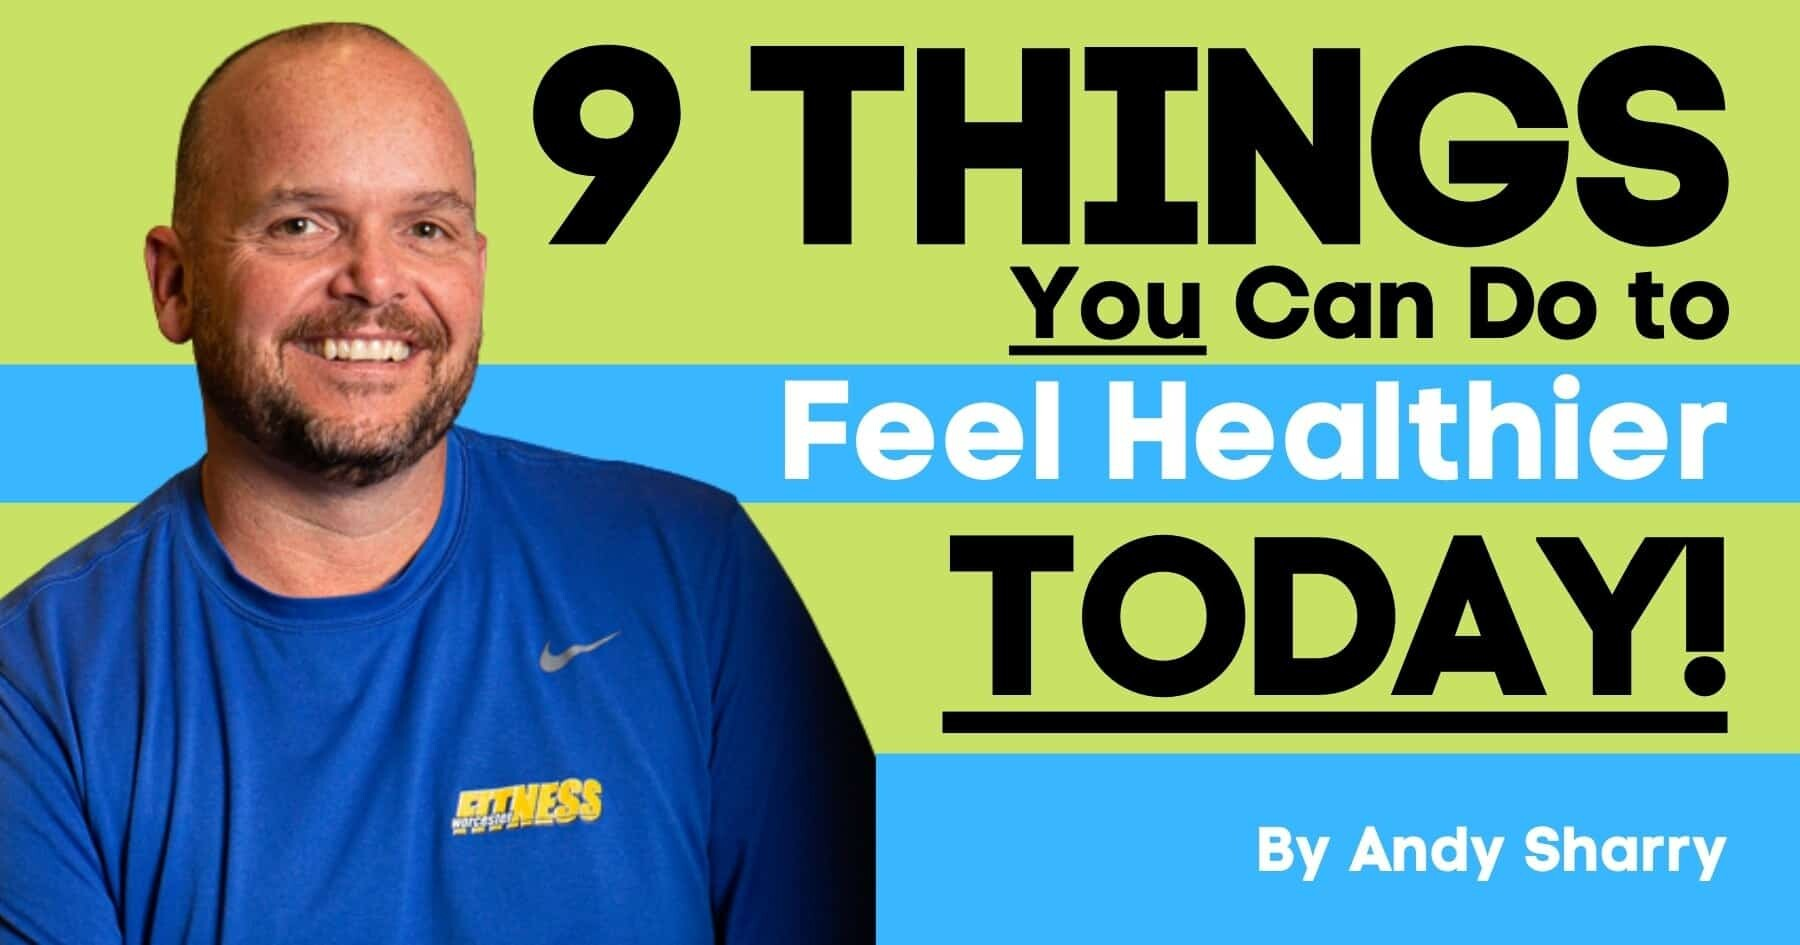 9 Things You Can Do to Feel Healthier Starting Today